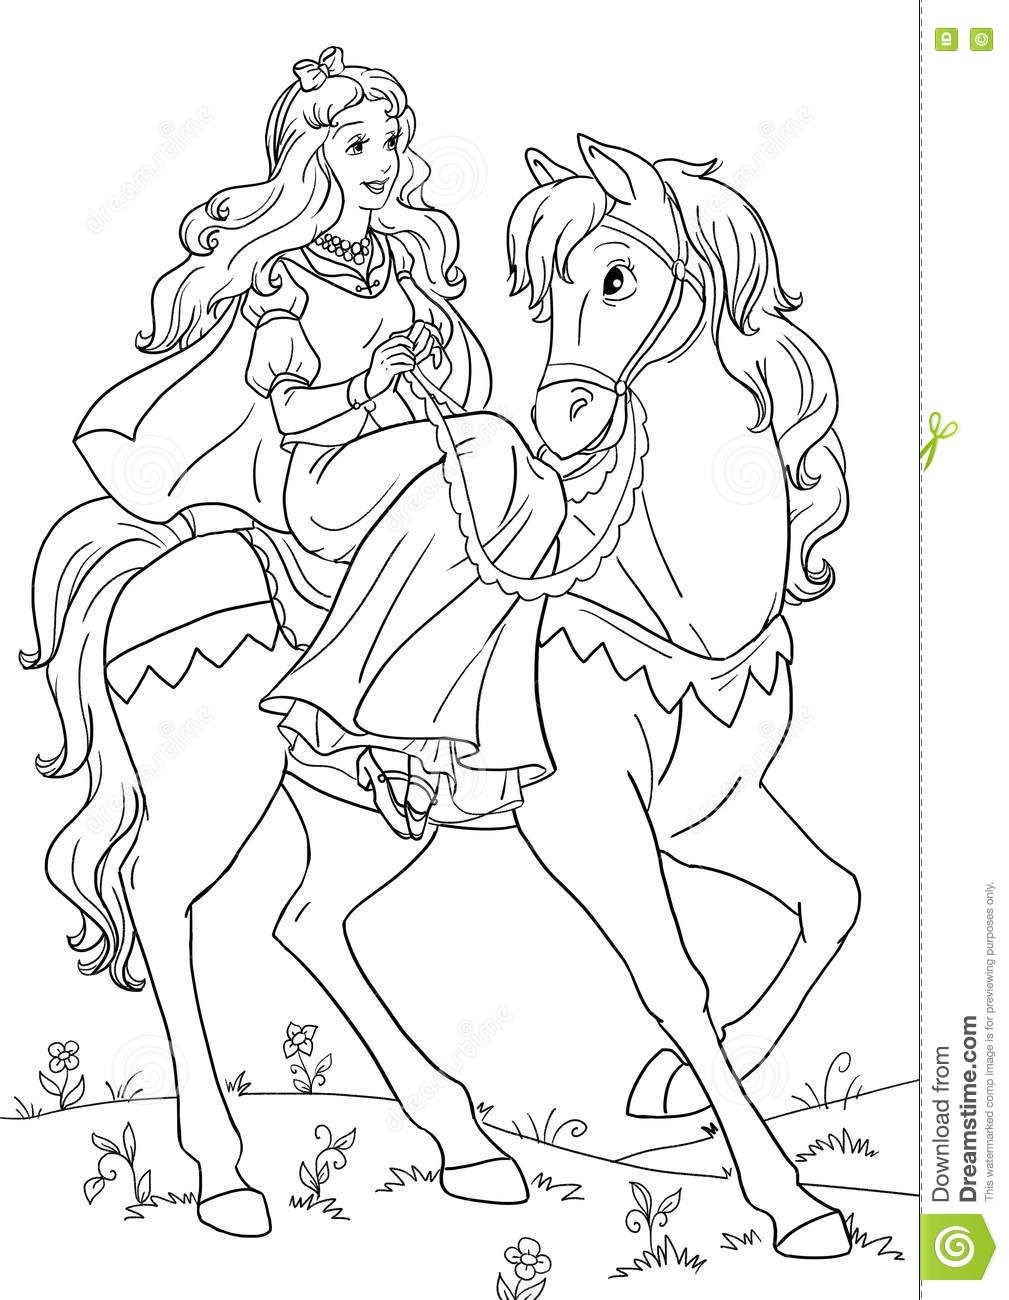 princess riding a horse coloring pages princess belle riding horse coloring pages disney princess pages a riding coloring horse